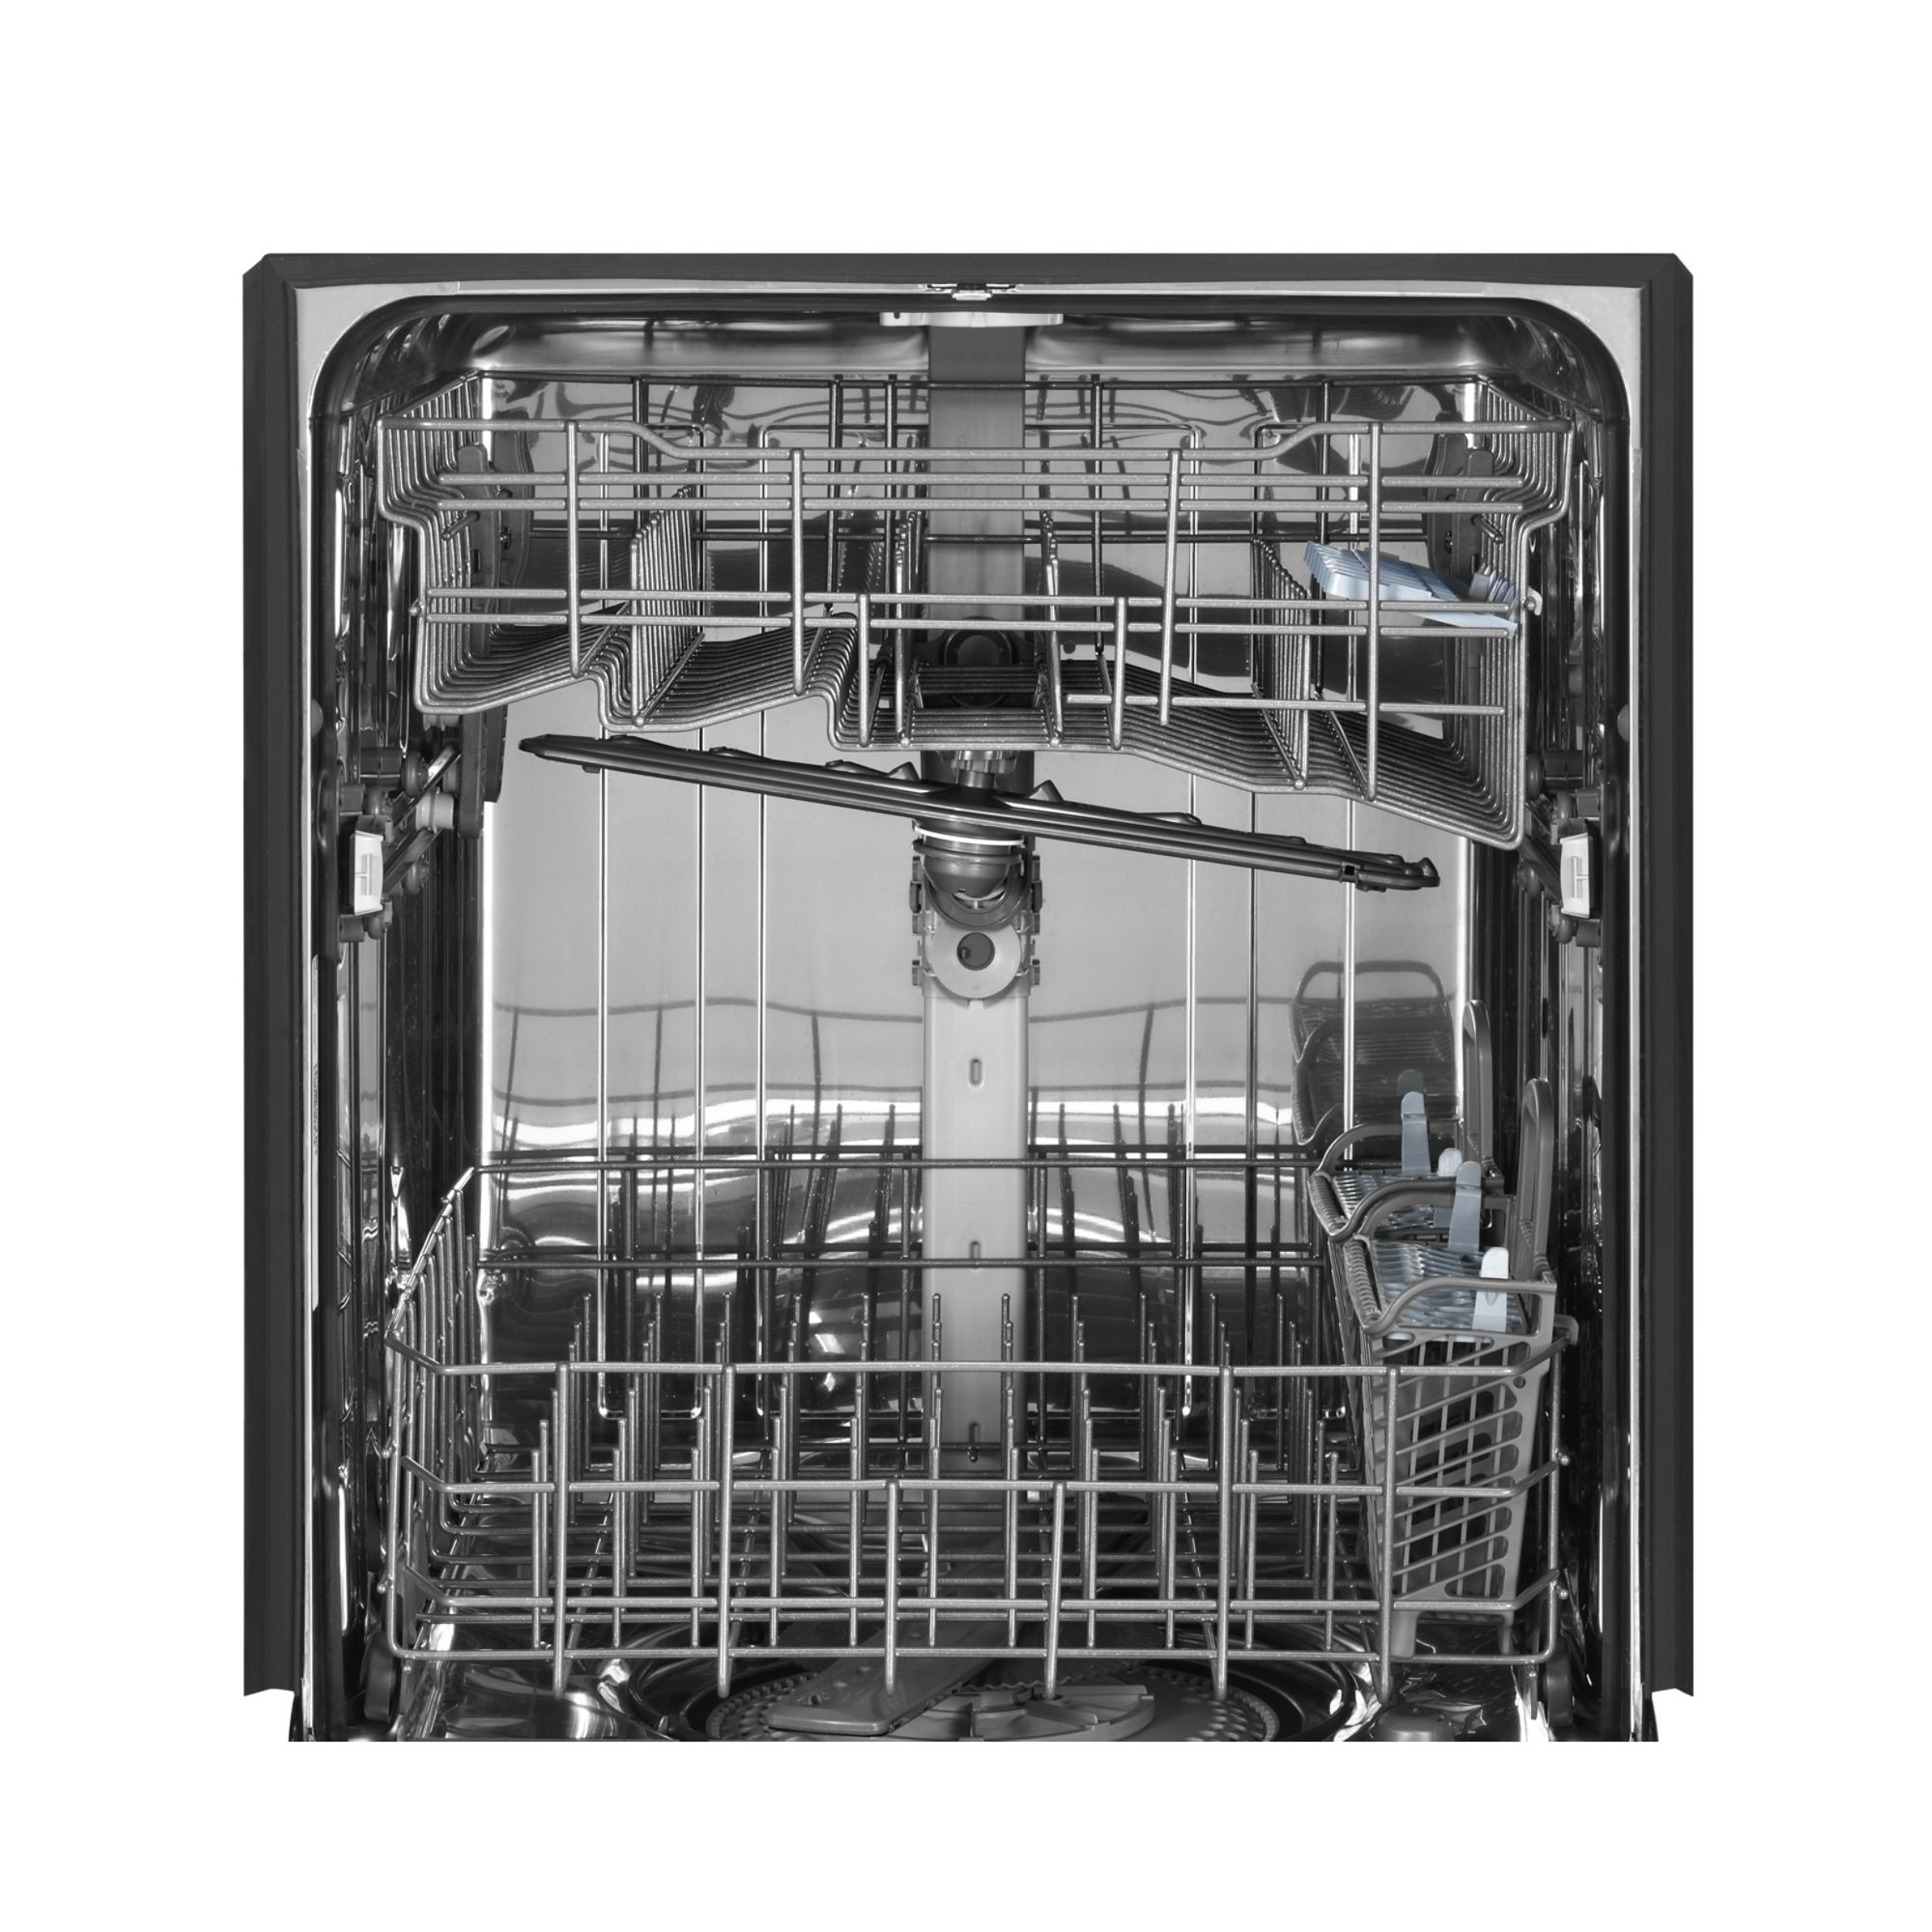 "Maytag 24"" Jetclean® Plus Dishwasher w/ Fully Integrated Controls - Black"